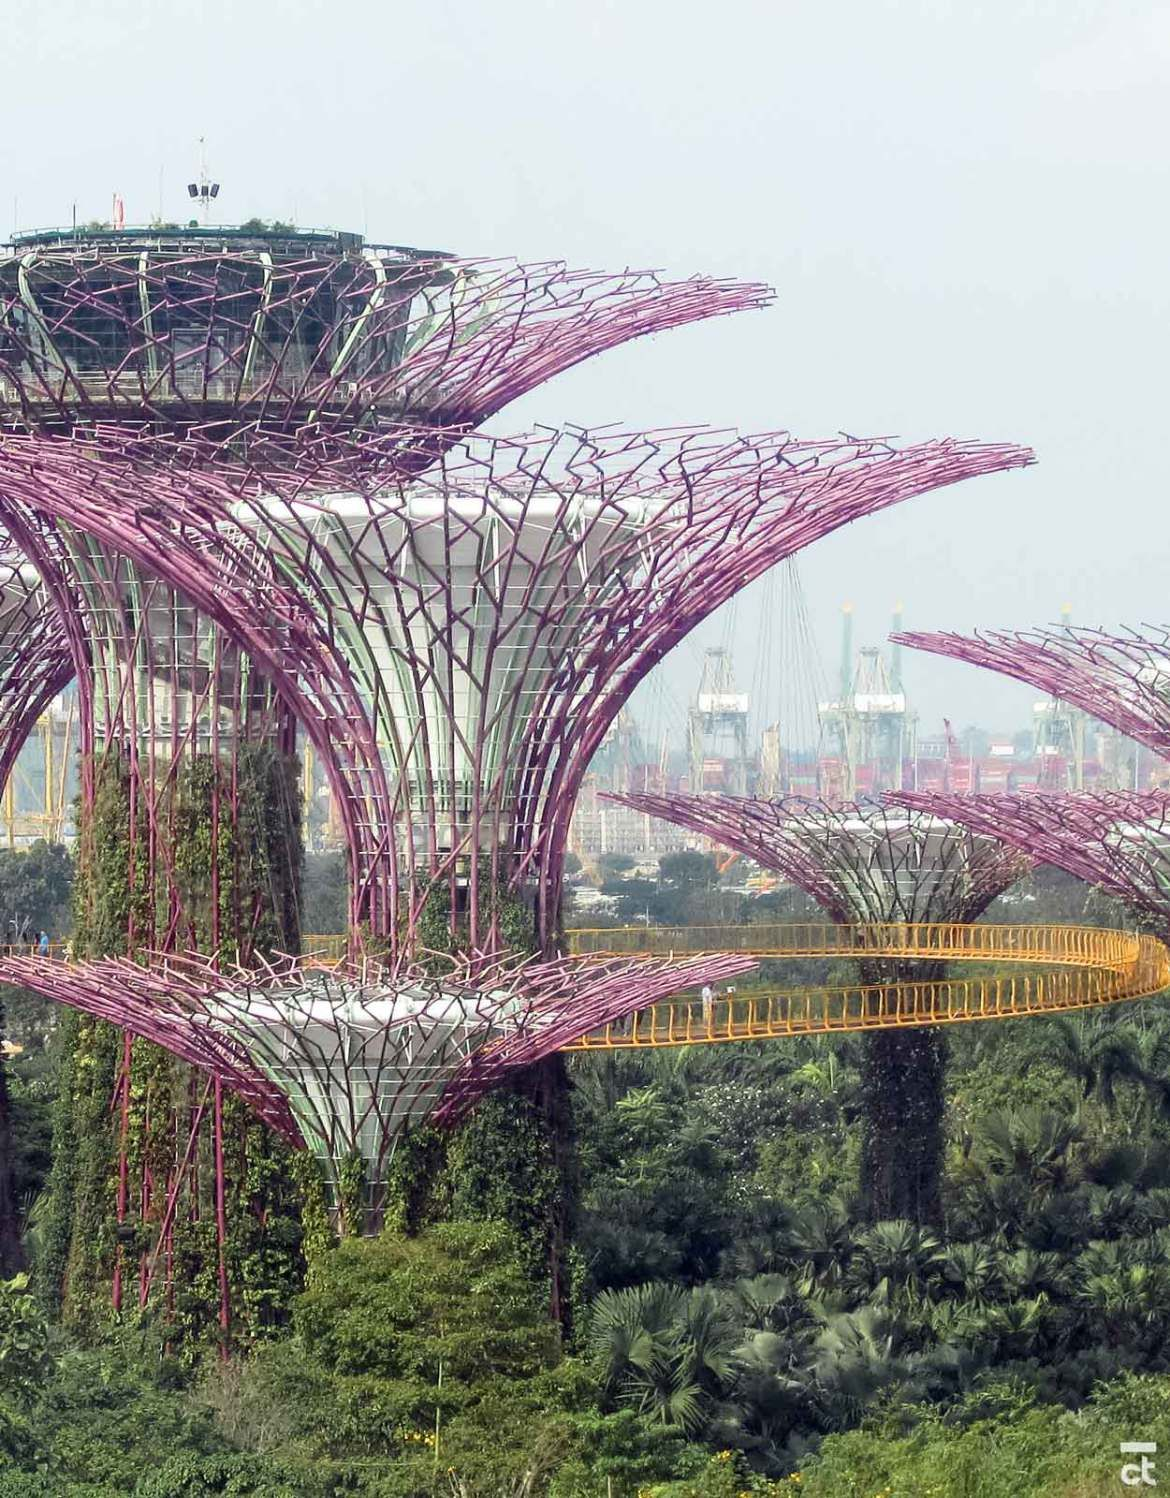 Gardens by the Bay & Supertrees in Singapore: What You Must See #botanicgarden